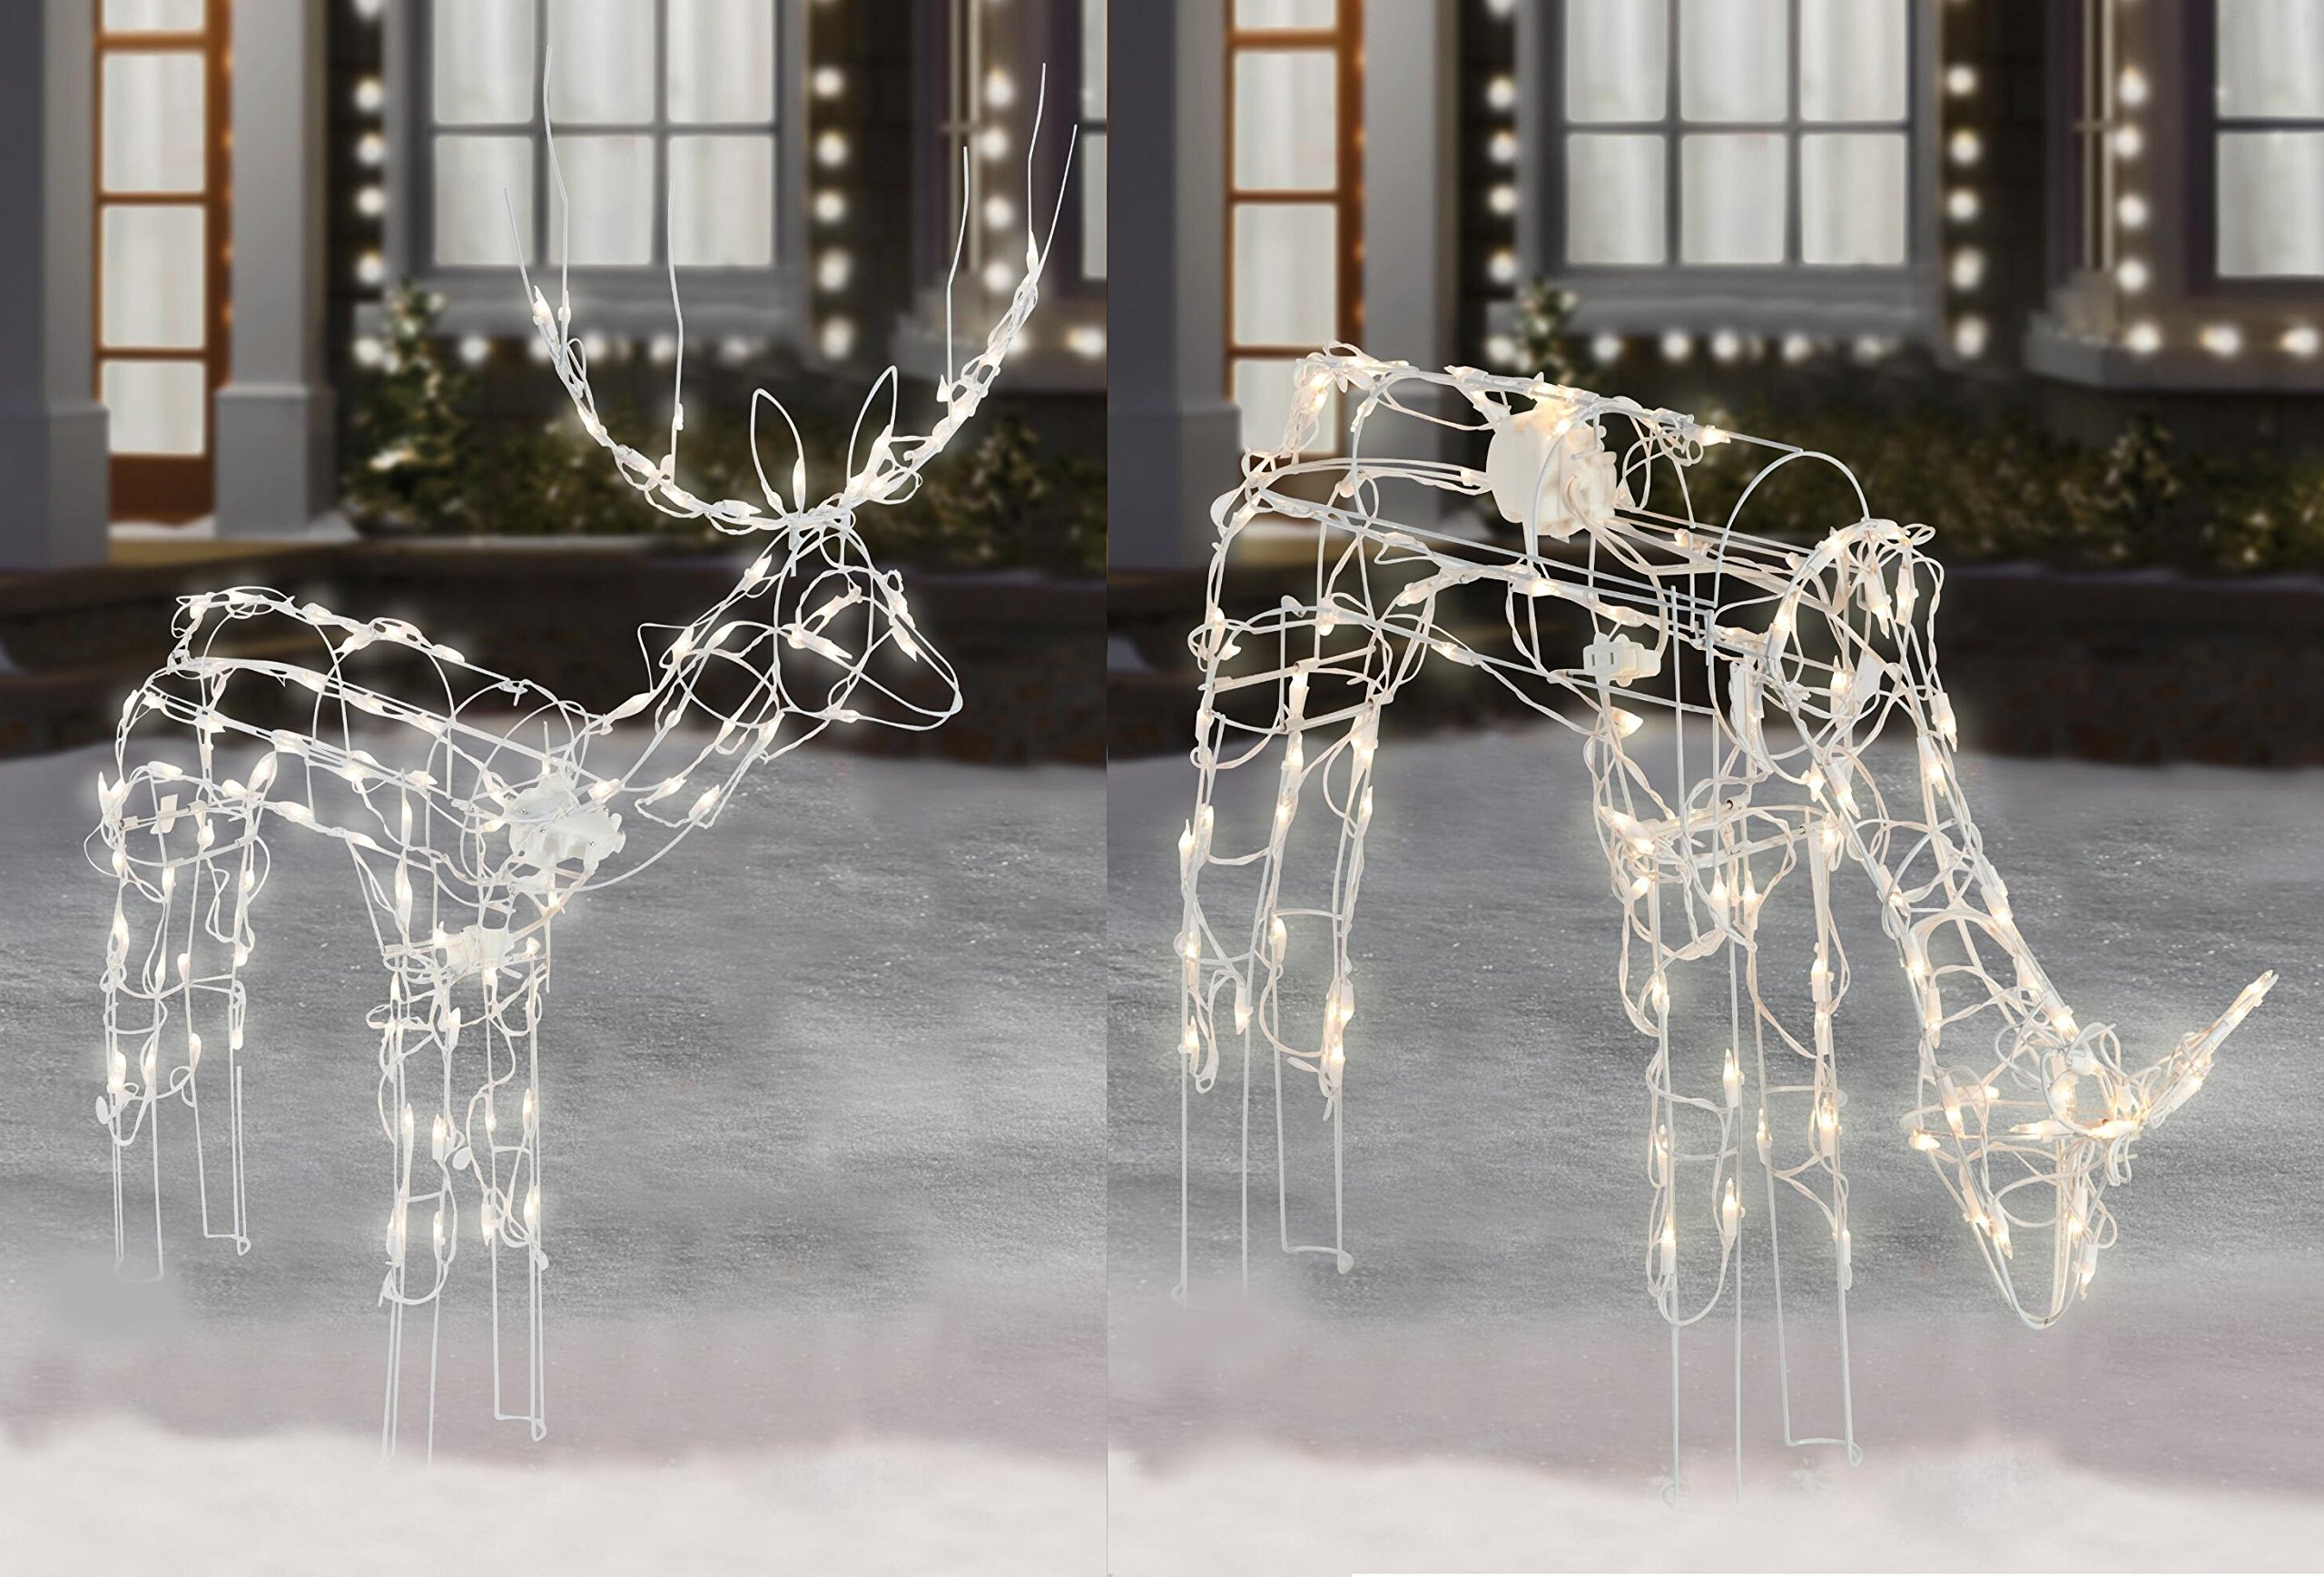 2-Piece Lighted Animated Holiday Deer Family - 48'' Animated Buck and 42'' Animated Doe - 210 Clear Lights by Winter Wonder Lane (Image #1)